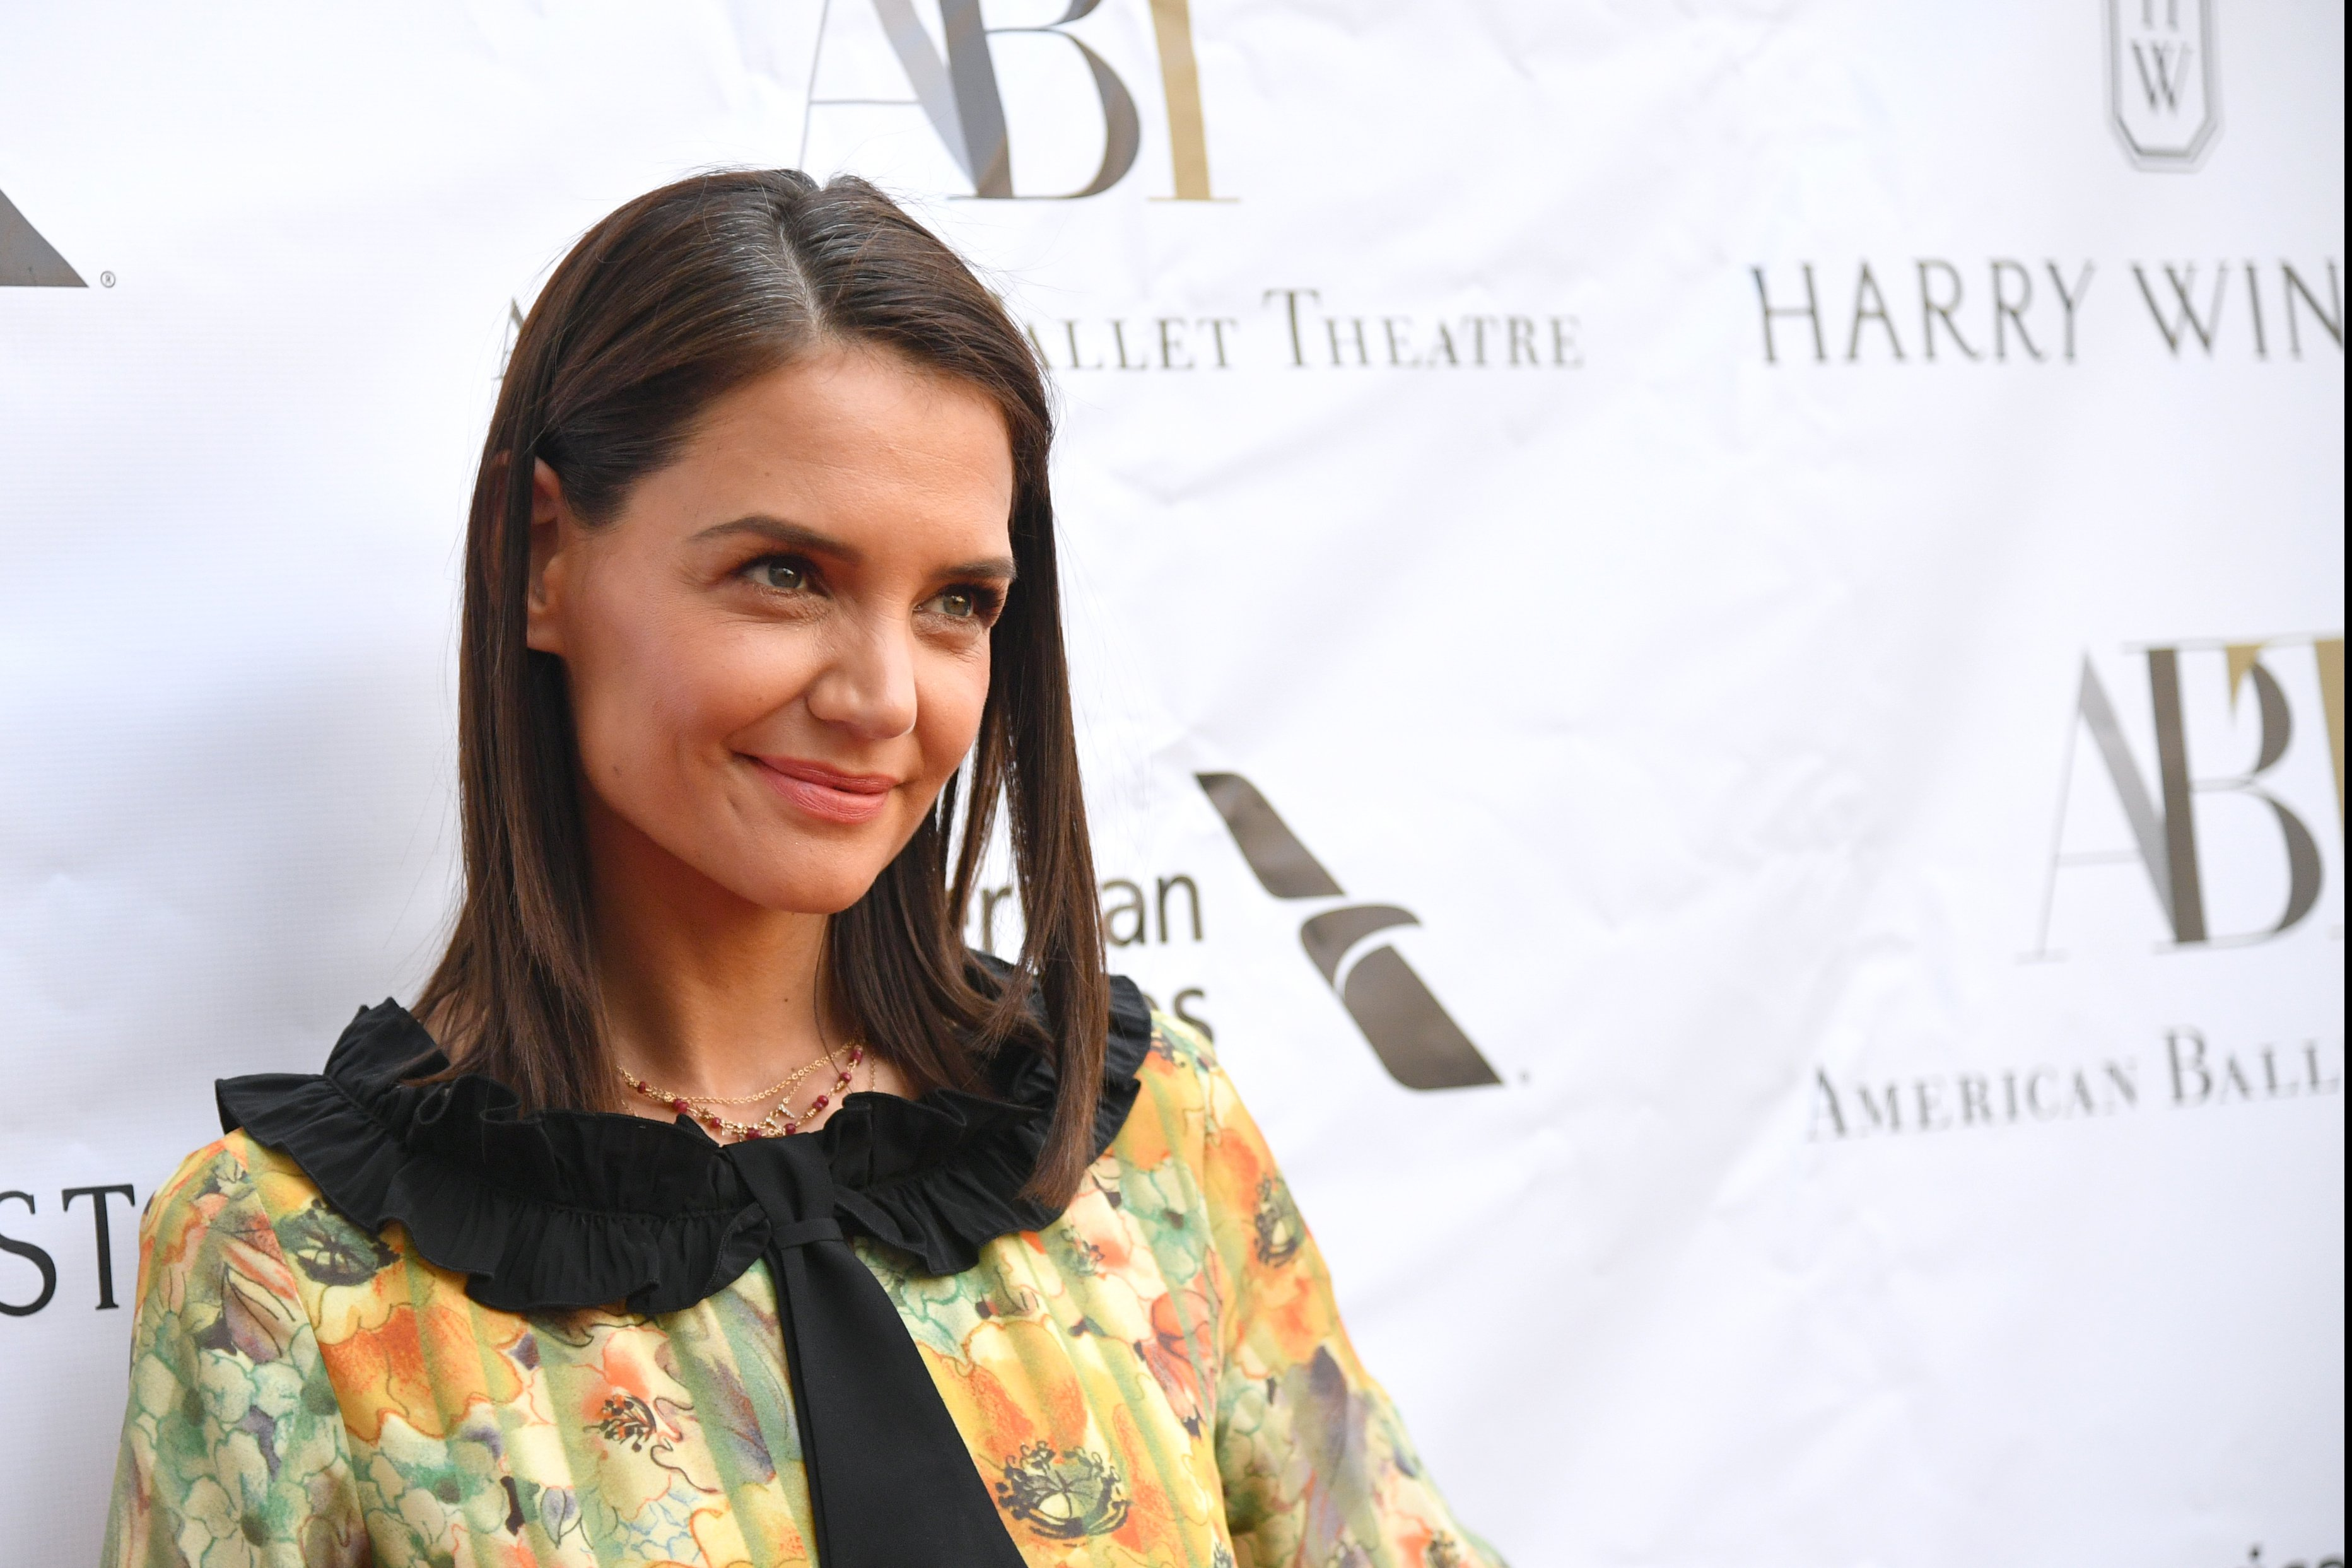 Katie Holmes attends the American Ballet Theatre 2019 Spring Gala at The Metropolitan Opera House on May 20, 2019. | Photo: GettyImages